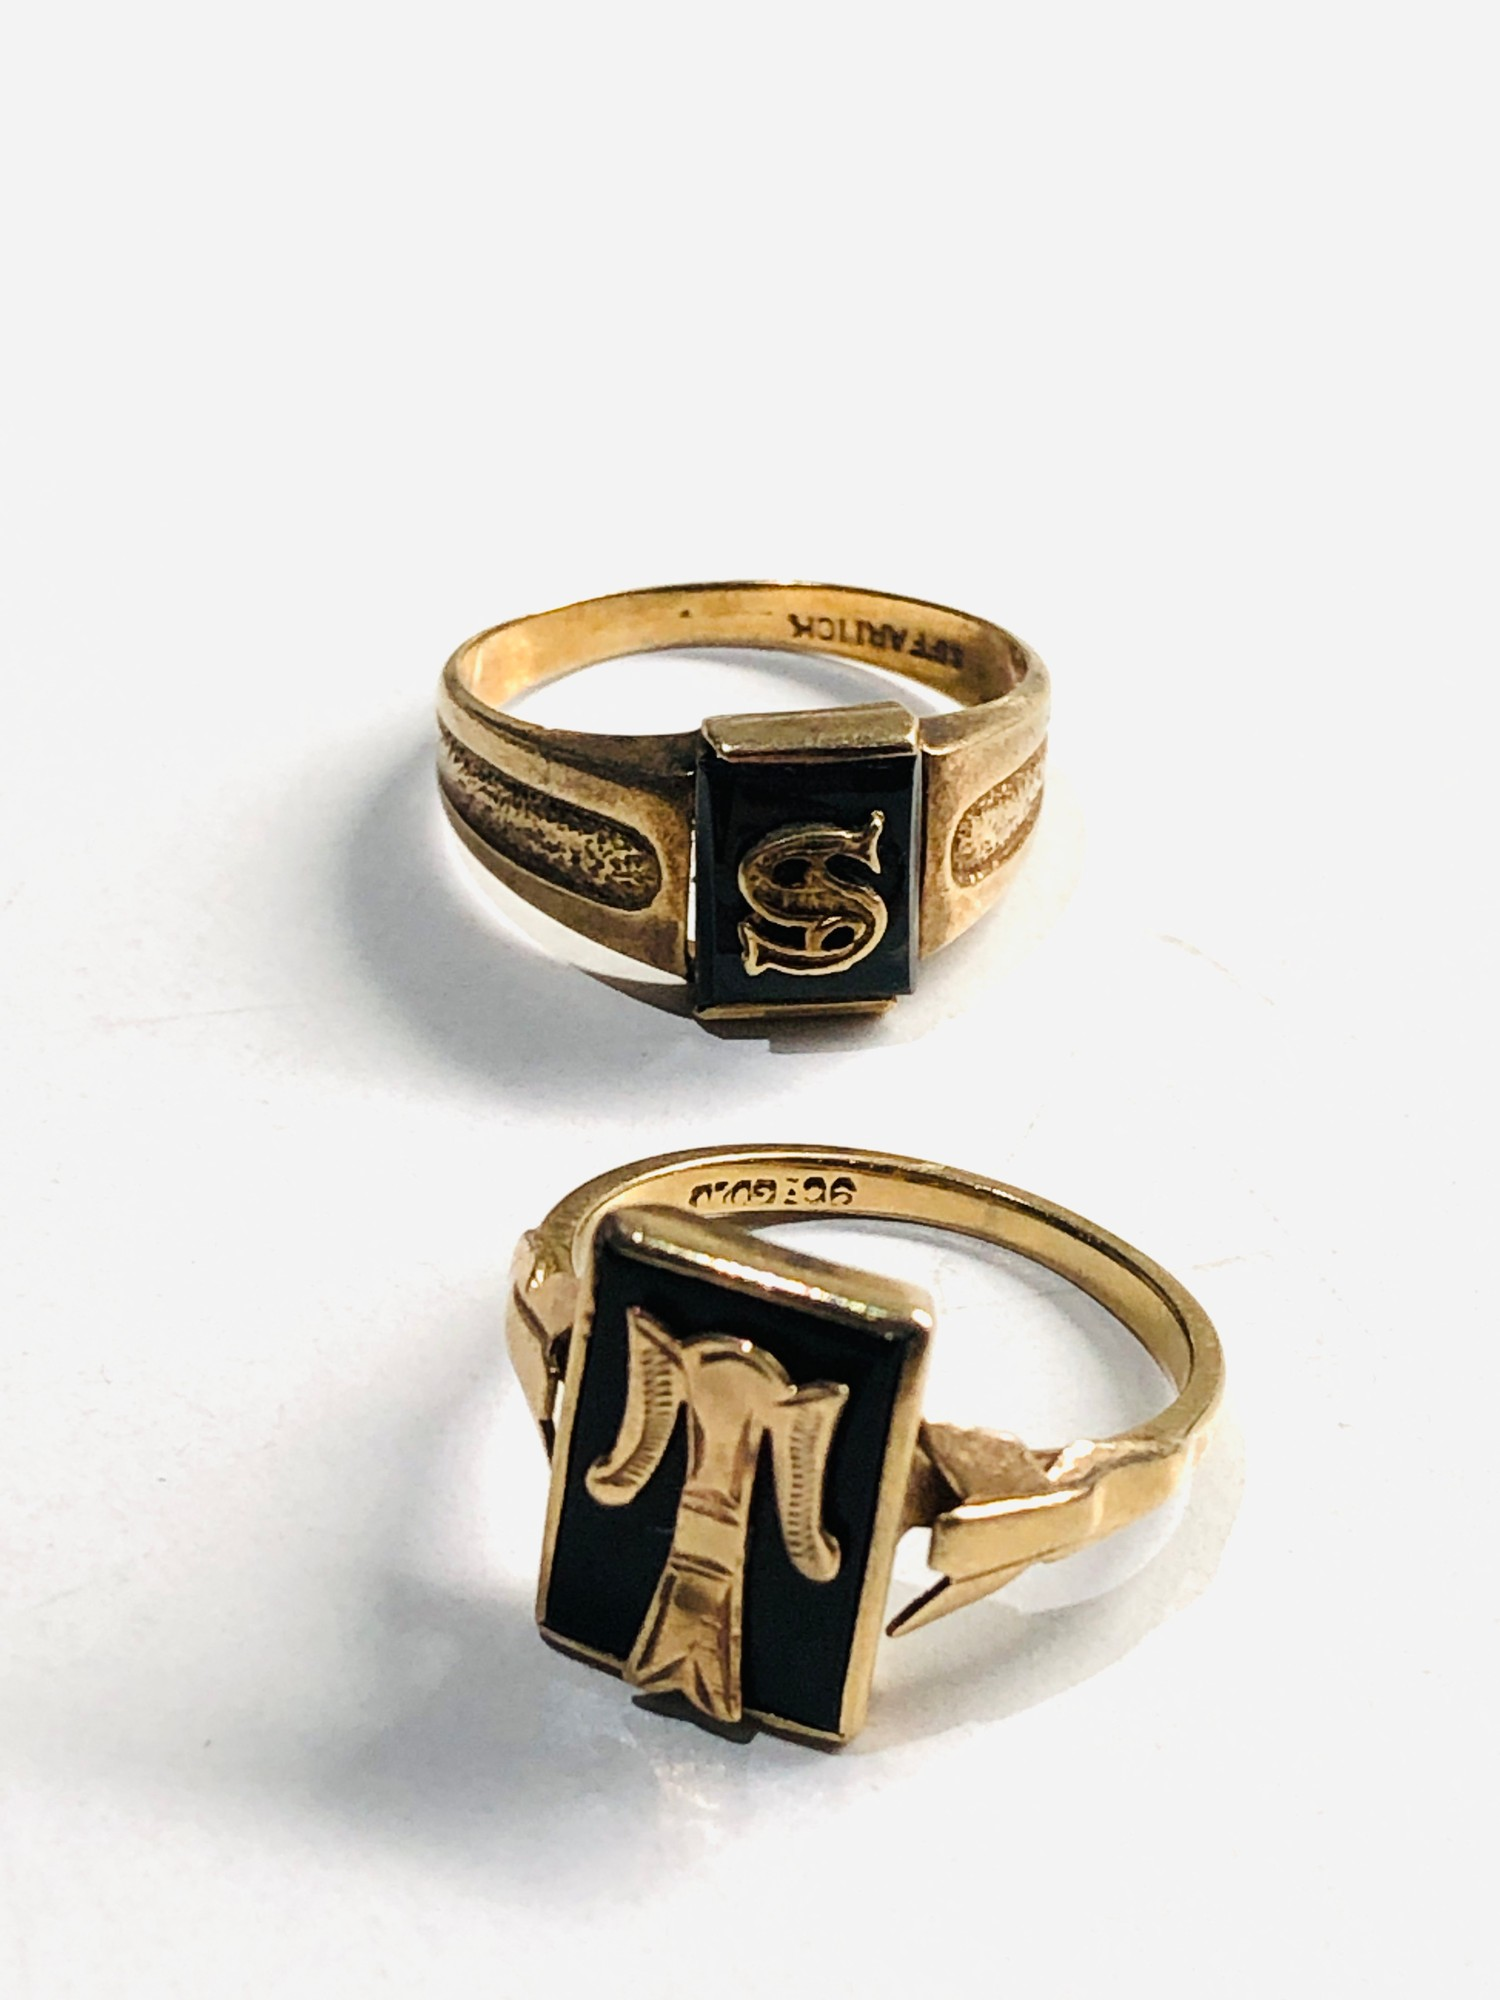 2 x 9ct vintage 9ct Gold initial signet rings 4.7g - Image 2 of 3